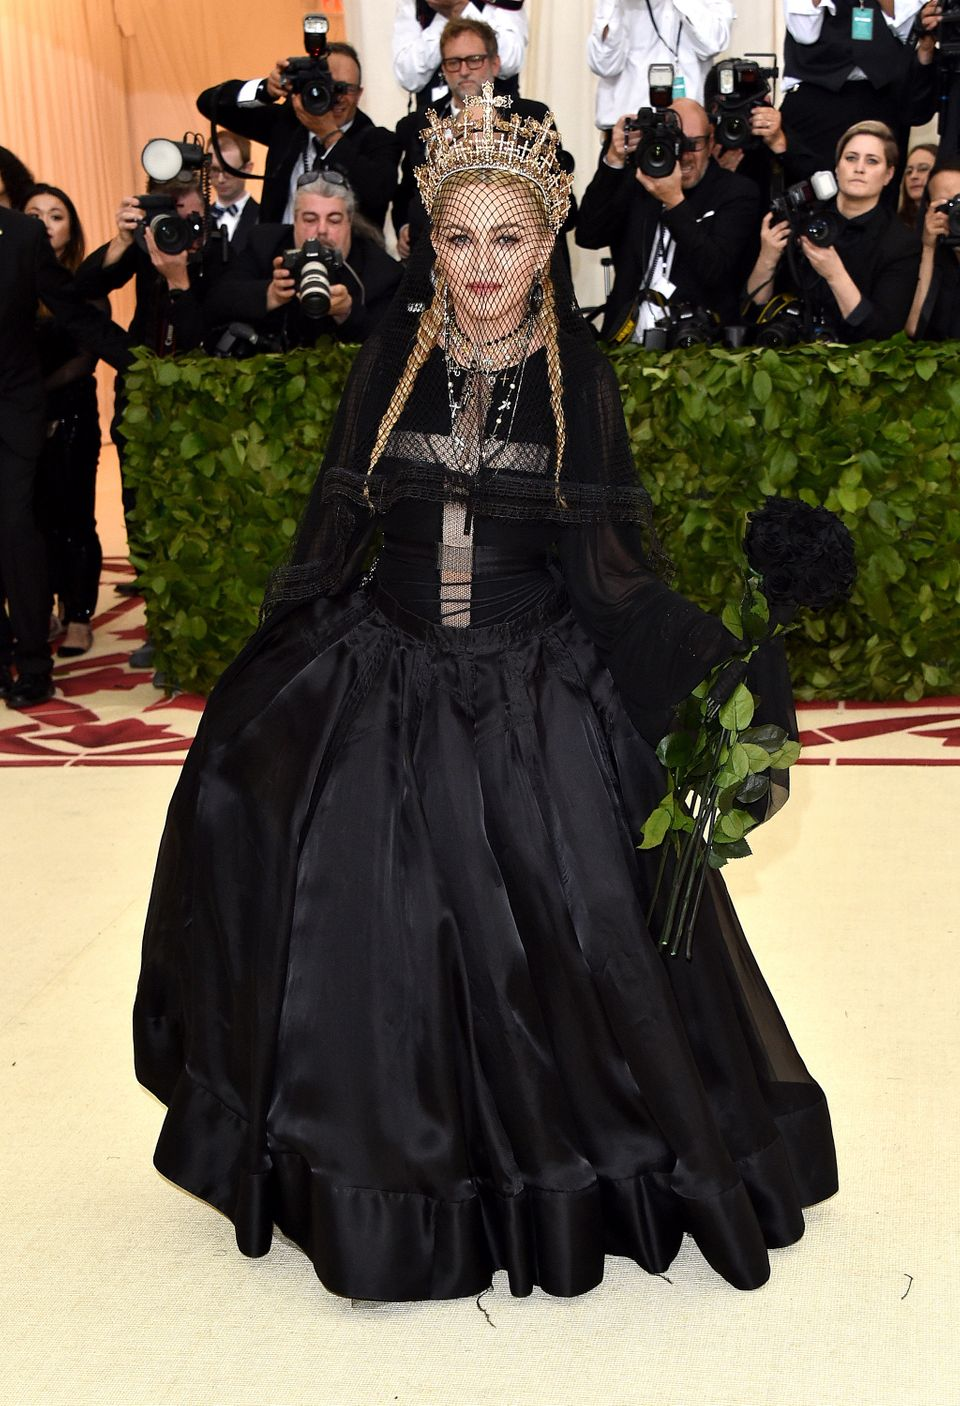 307765fe09a7f 60 Of Madonna's Most Iconic Fashion Moments Through The Years ...